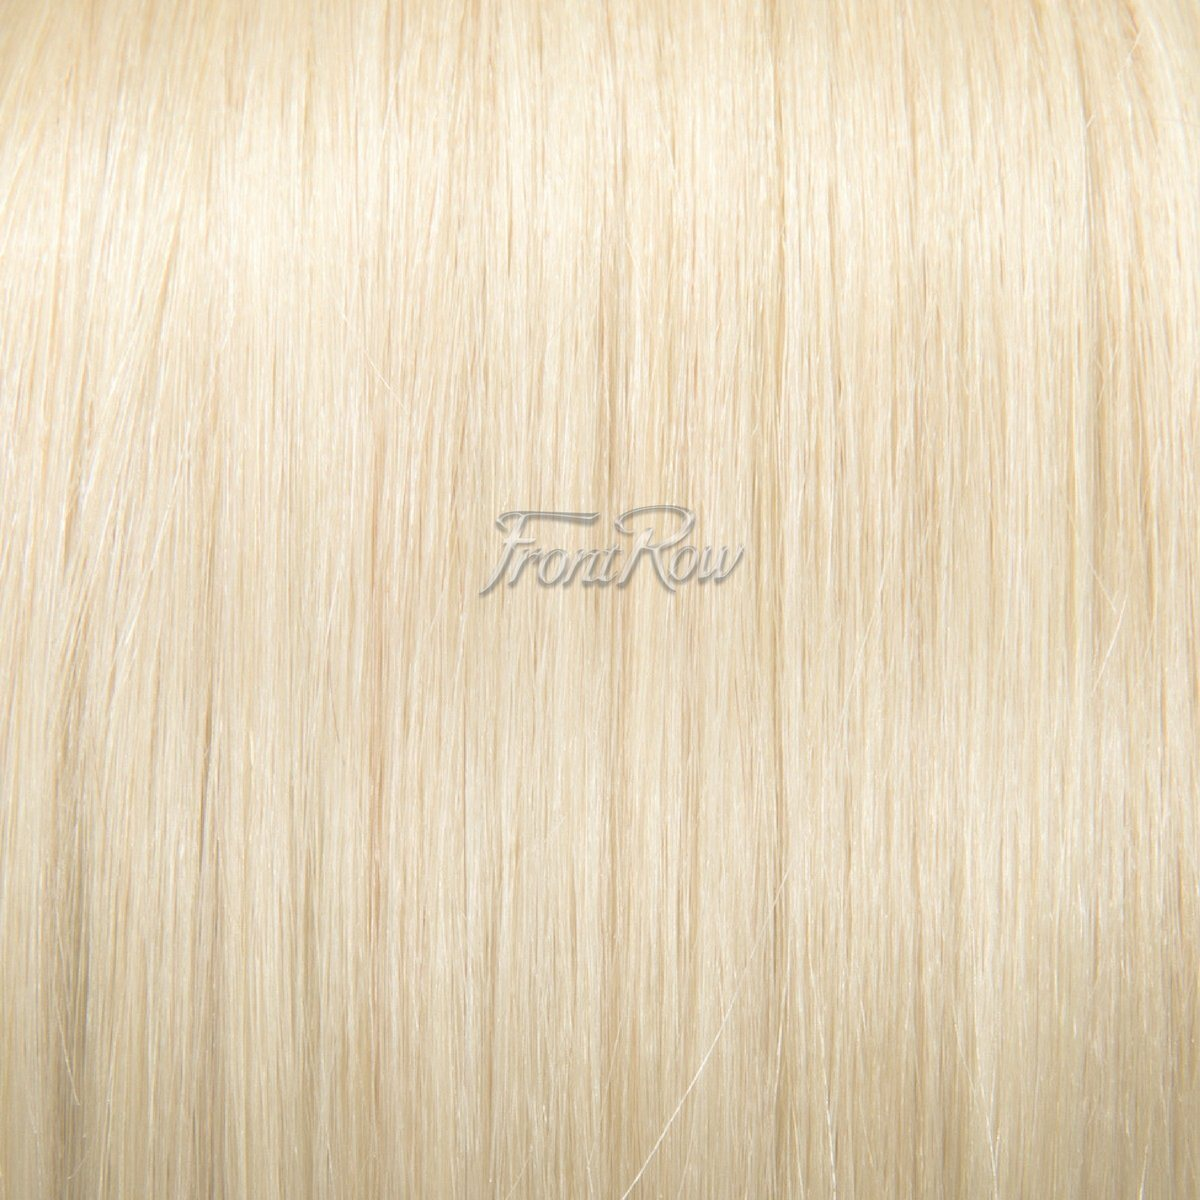 Ash Blonde 20inch Tapered Ends Clip-ins